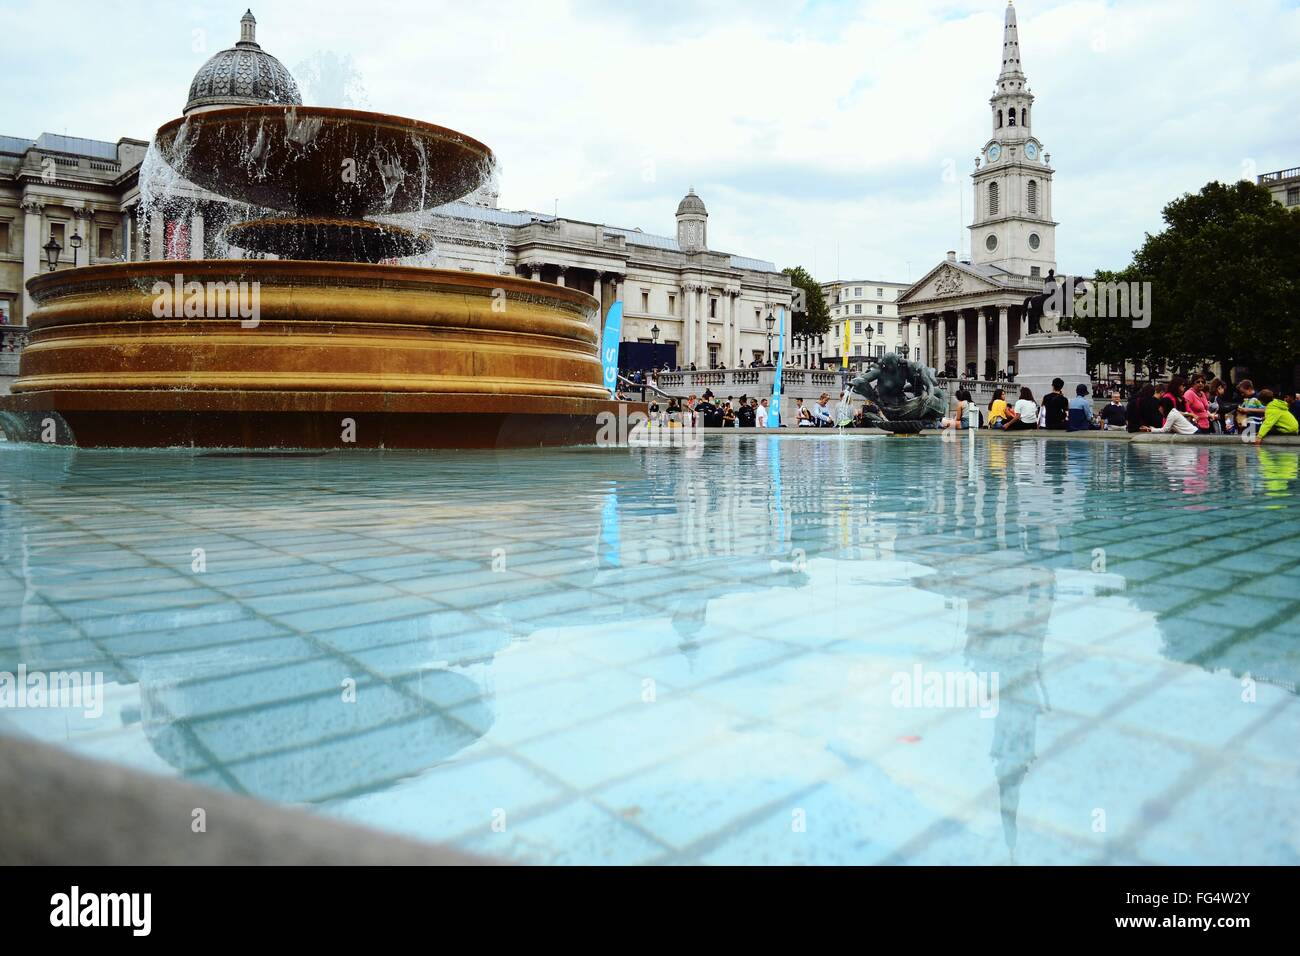 Fountain By People At Leicester Square - Stock Image